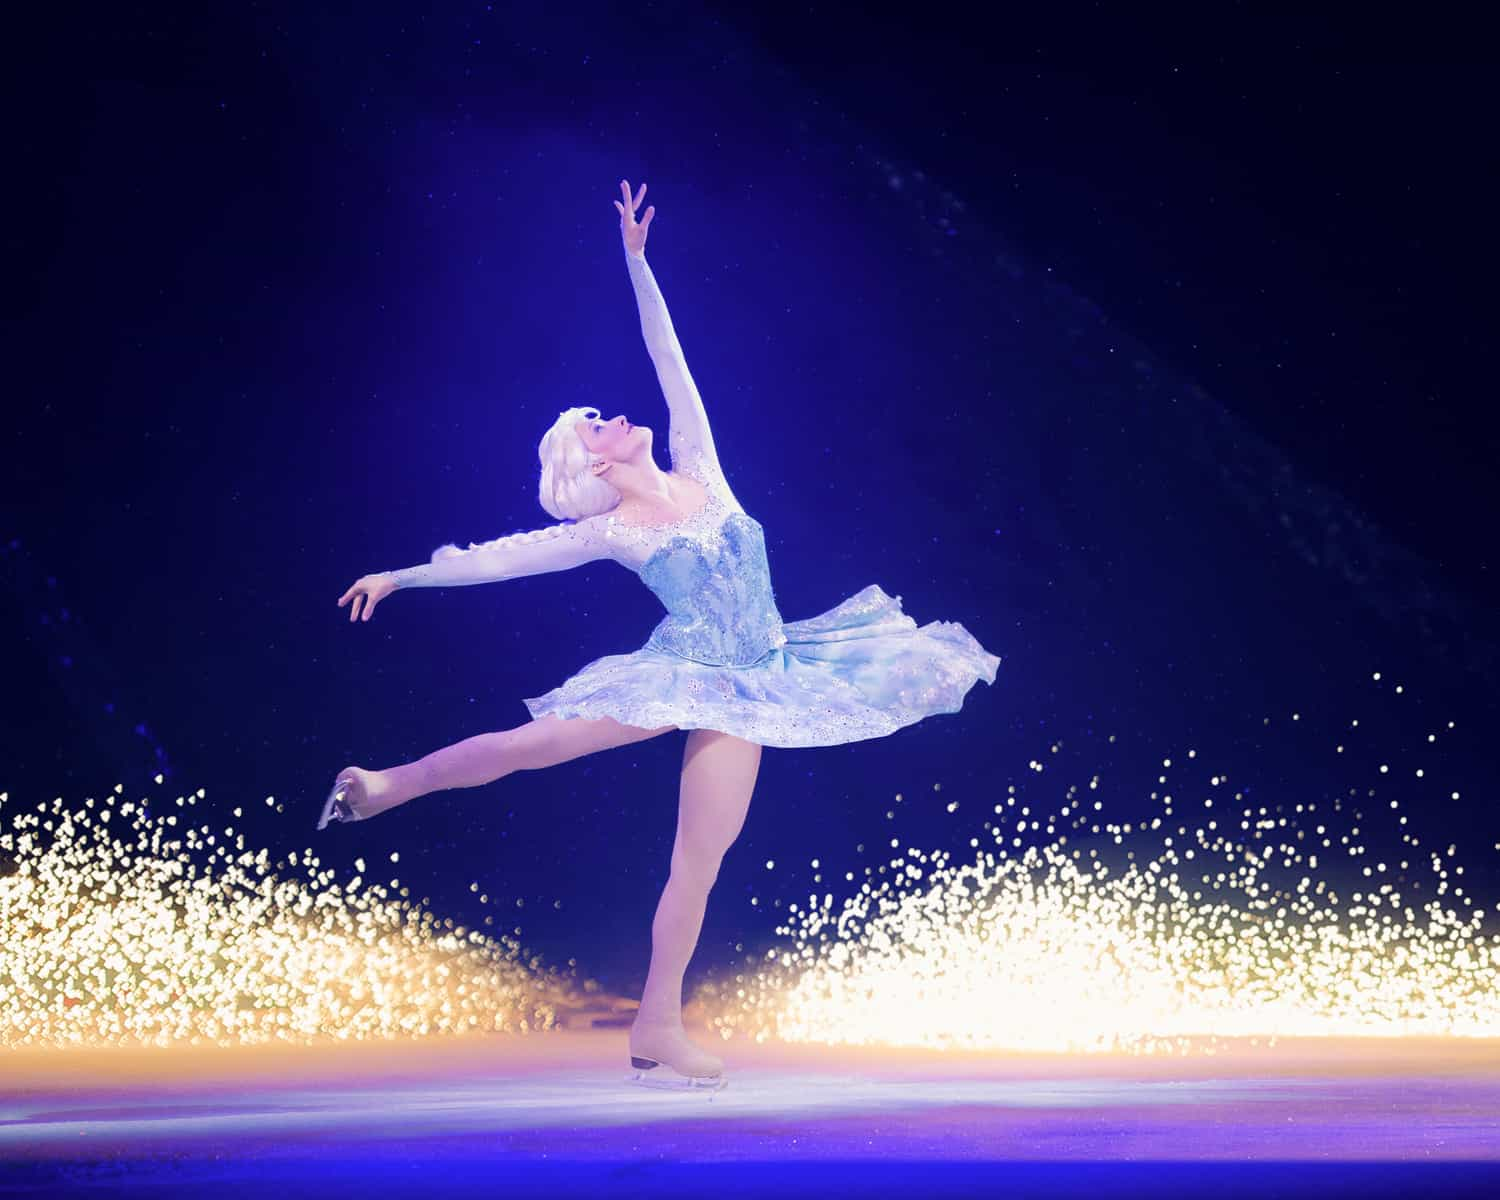 Elsa doing a pirouette on ice skates as part of Disney on Ice Worlds of Enchantment